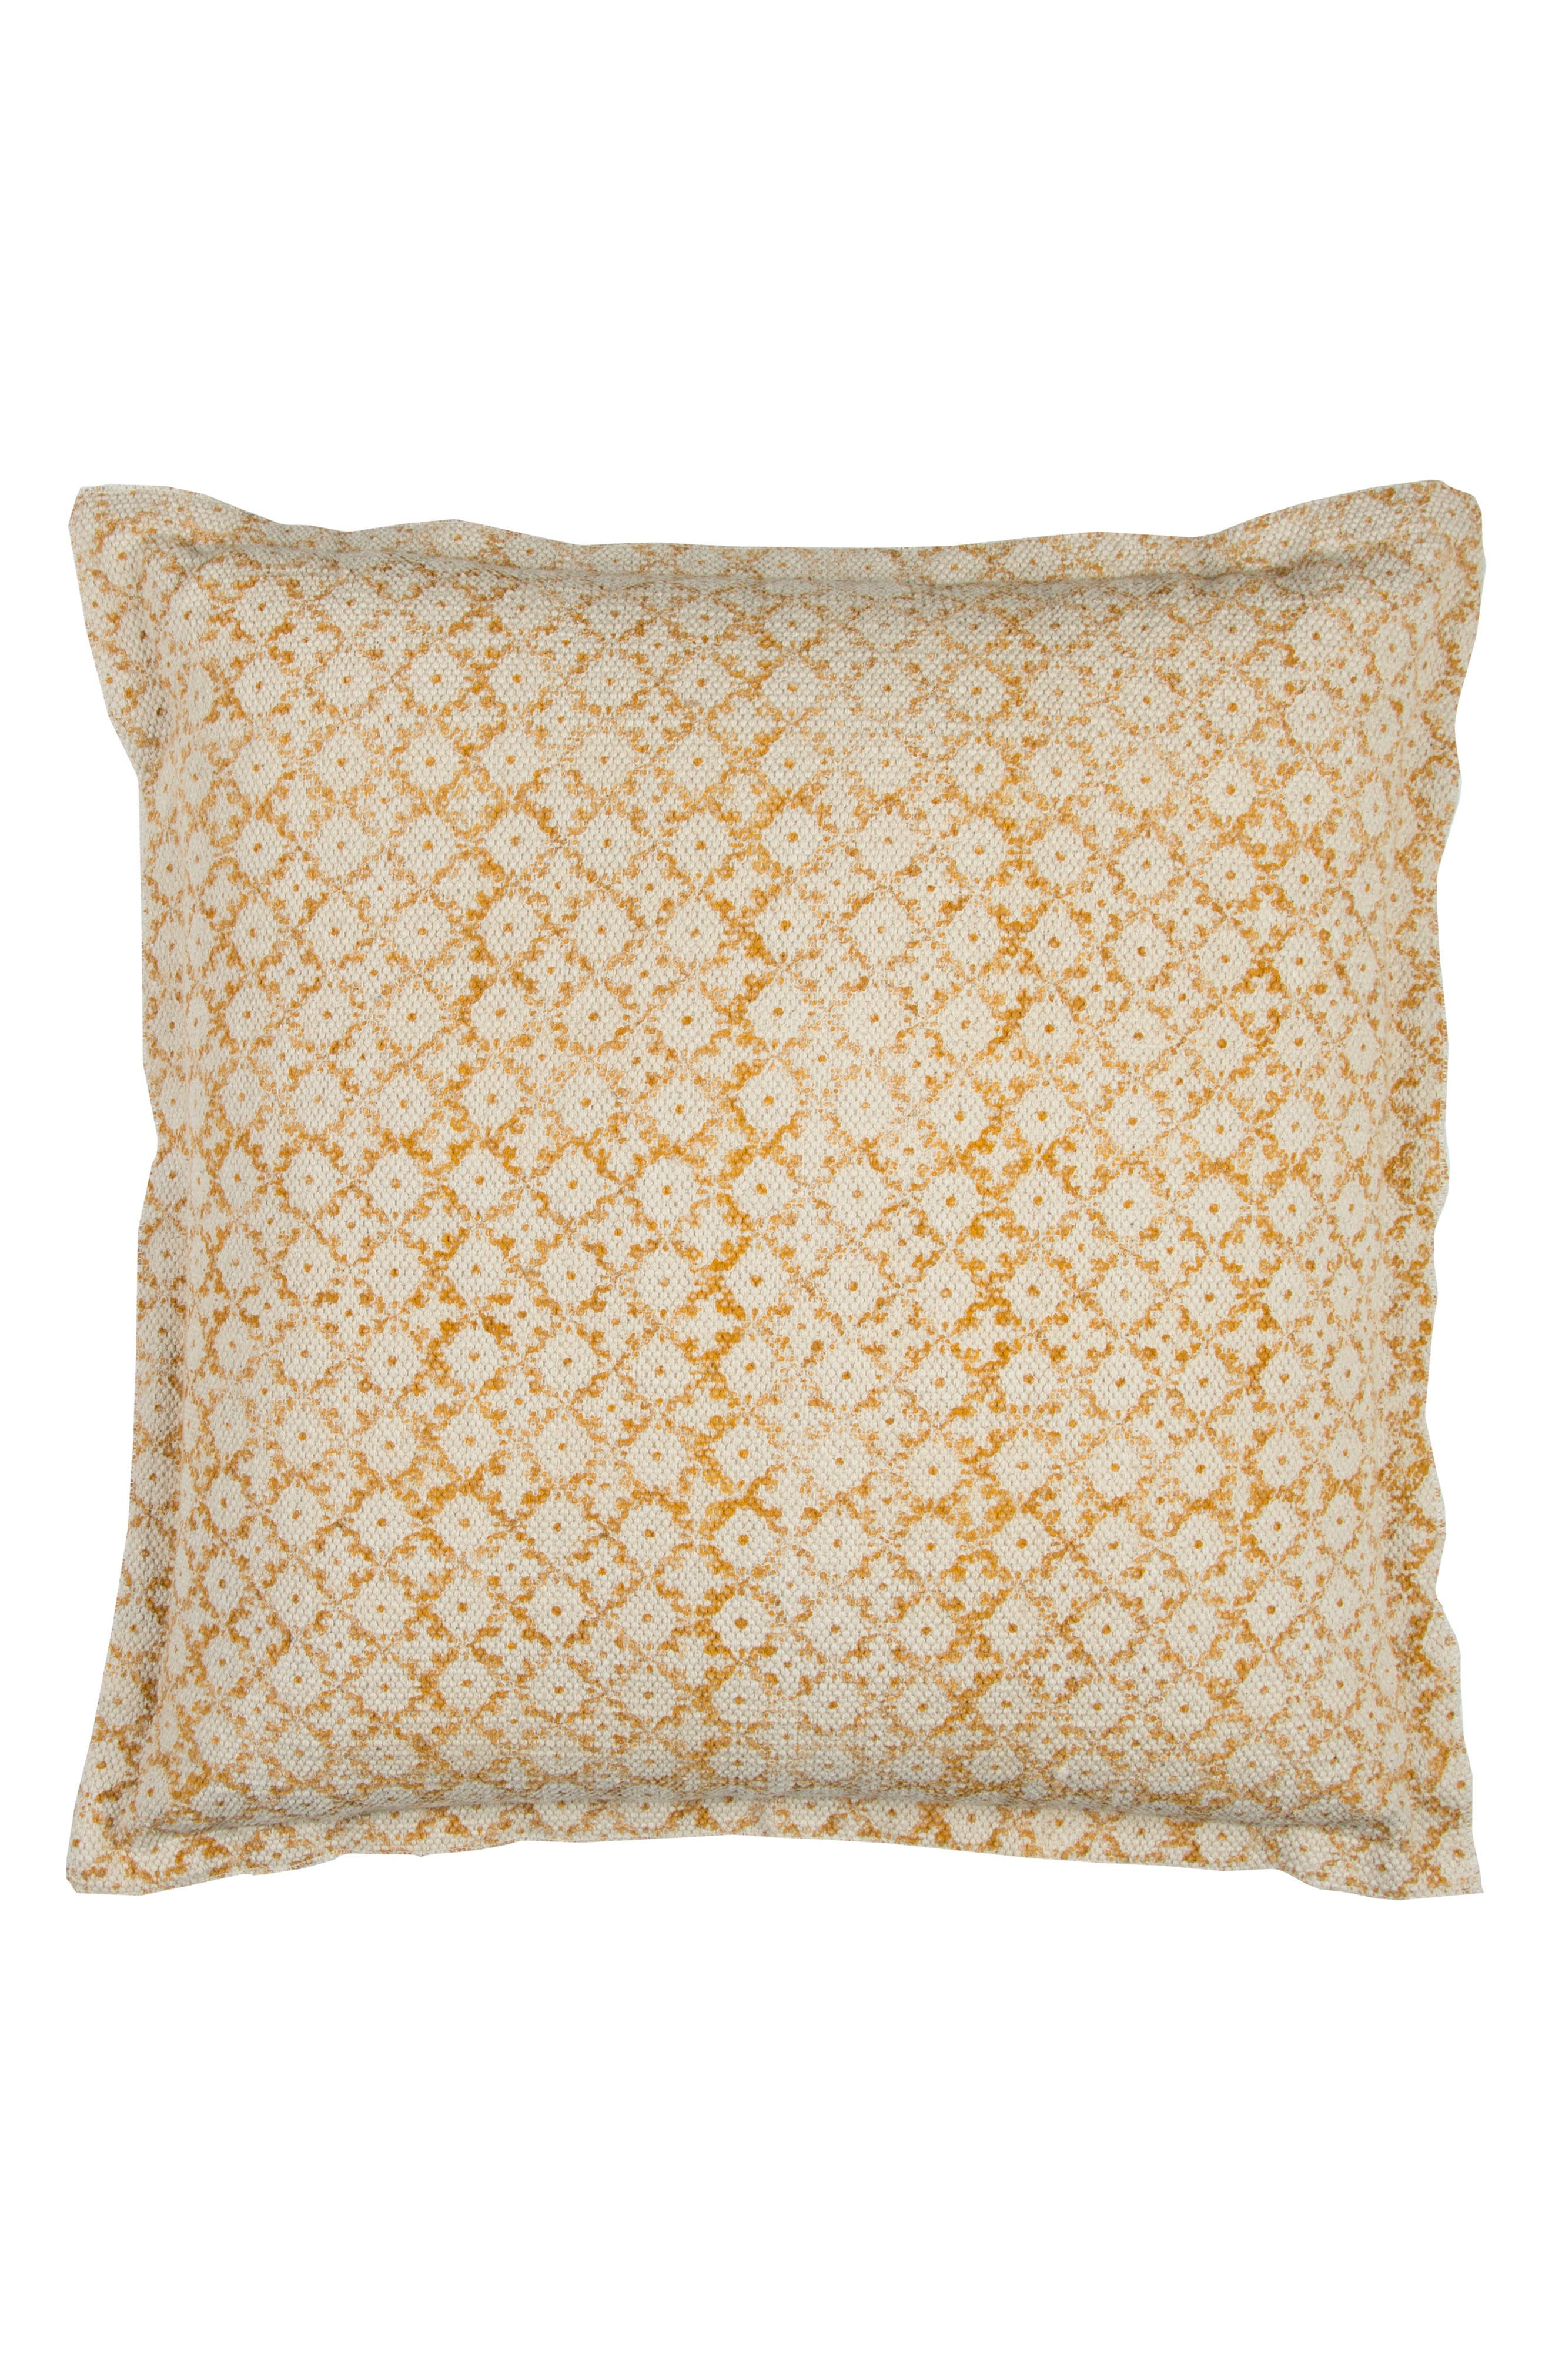 Geometric Accent Pillow,                             Main thumbnail 1, color,                             Natural